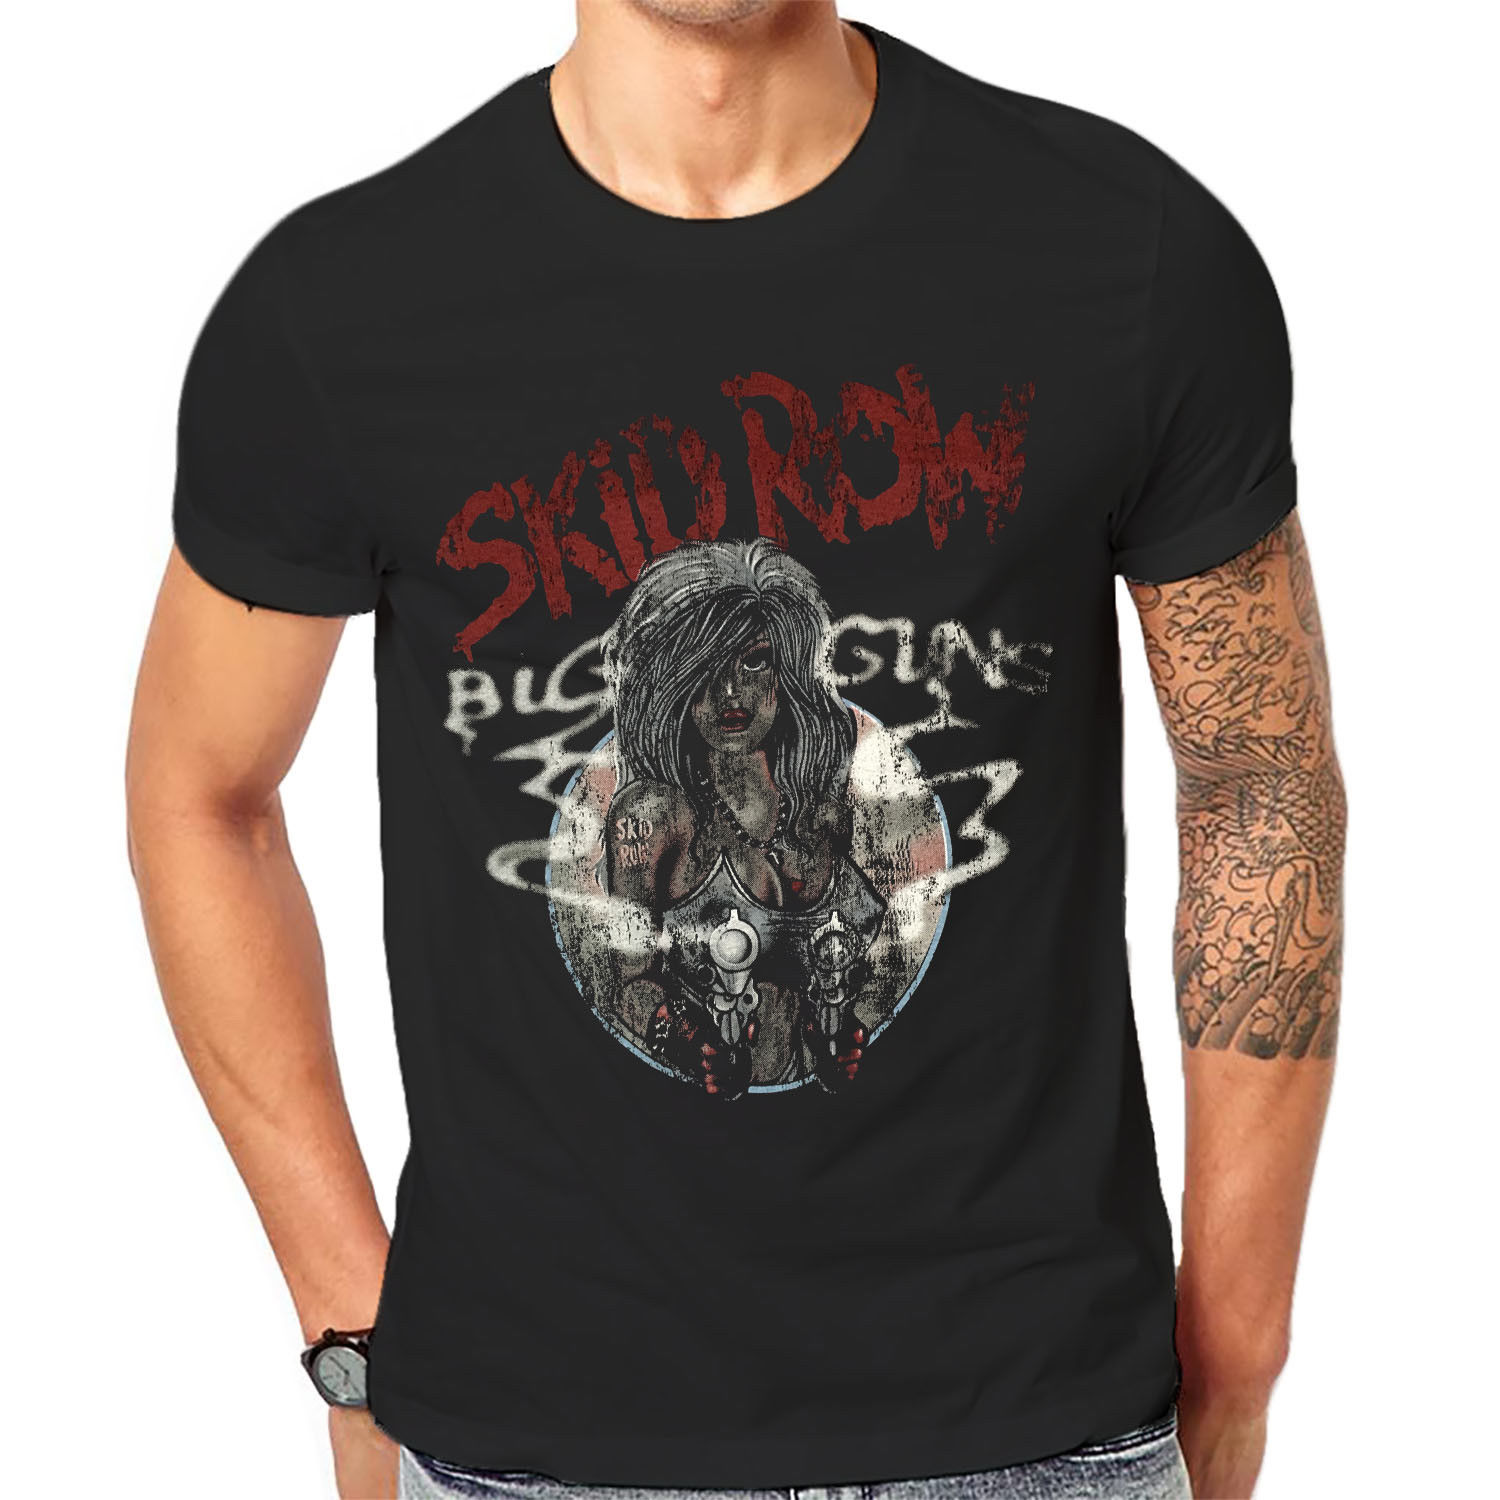 <font><b>Skid</b></font> <font><b>Row</b></font> <font><b>T</b></font> <font><b>Shirt</b></font> Cool Retro Black Old Band Classic Rock Band Tee <font><b>Shirts</b></font> 1-A-099 Print <font><b>T</b></font>-<font><b>Shirts</b></font> Men image